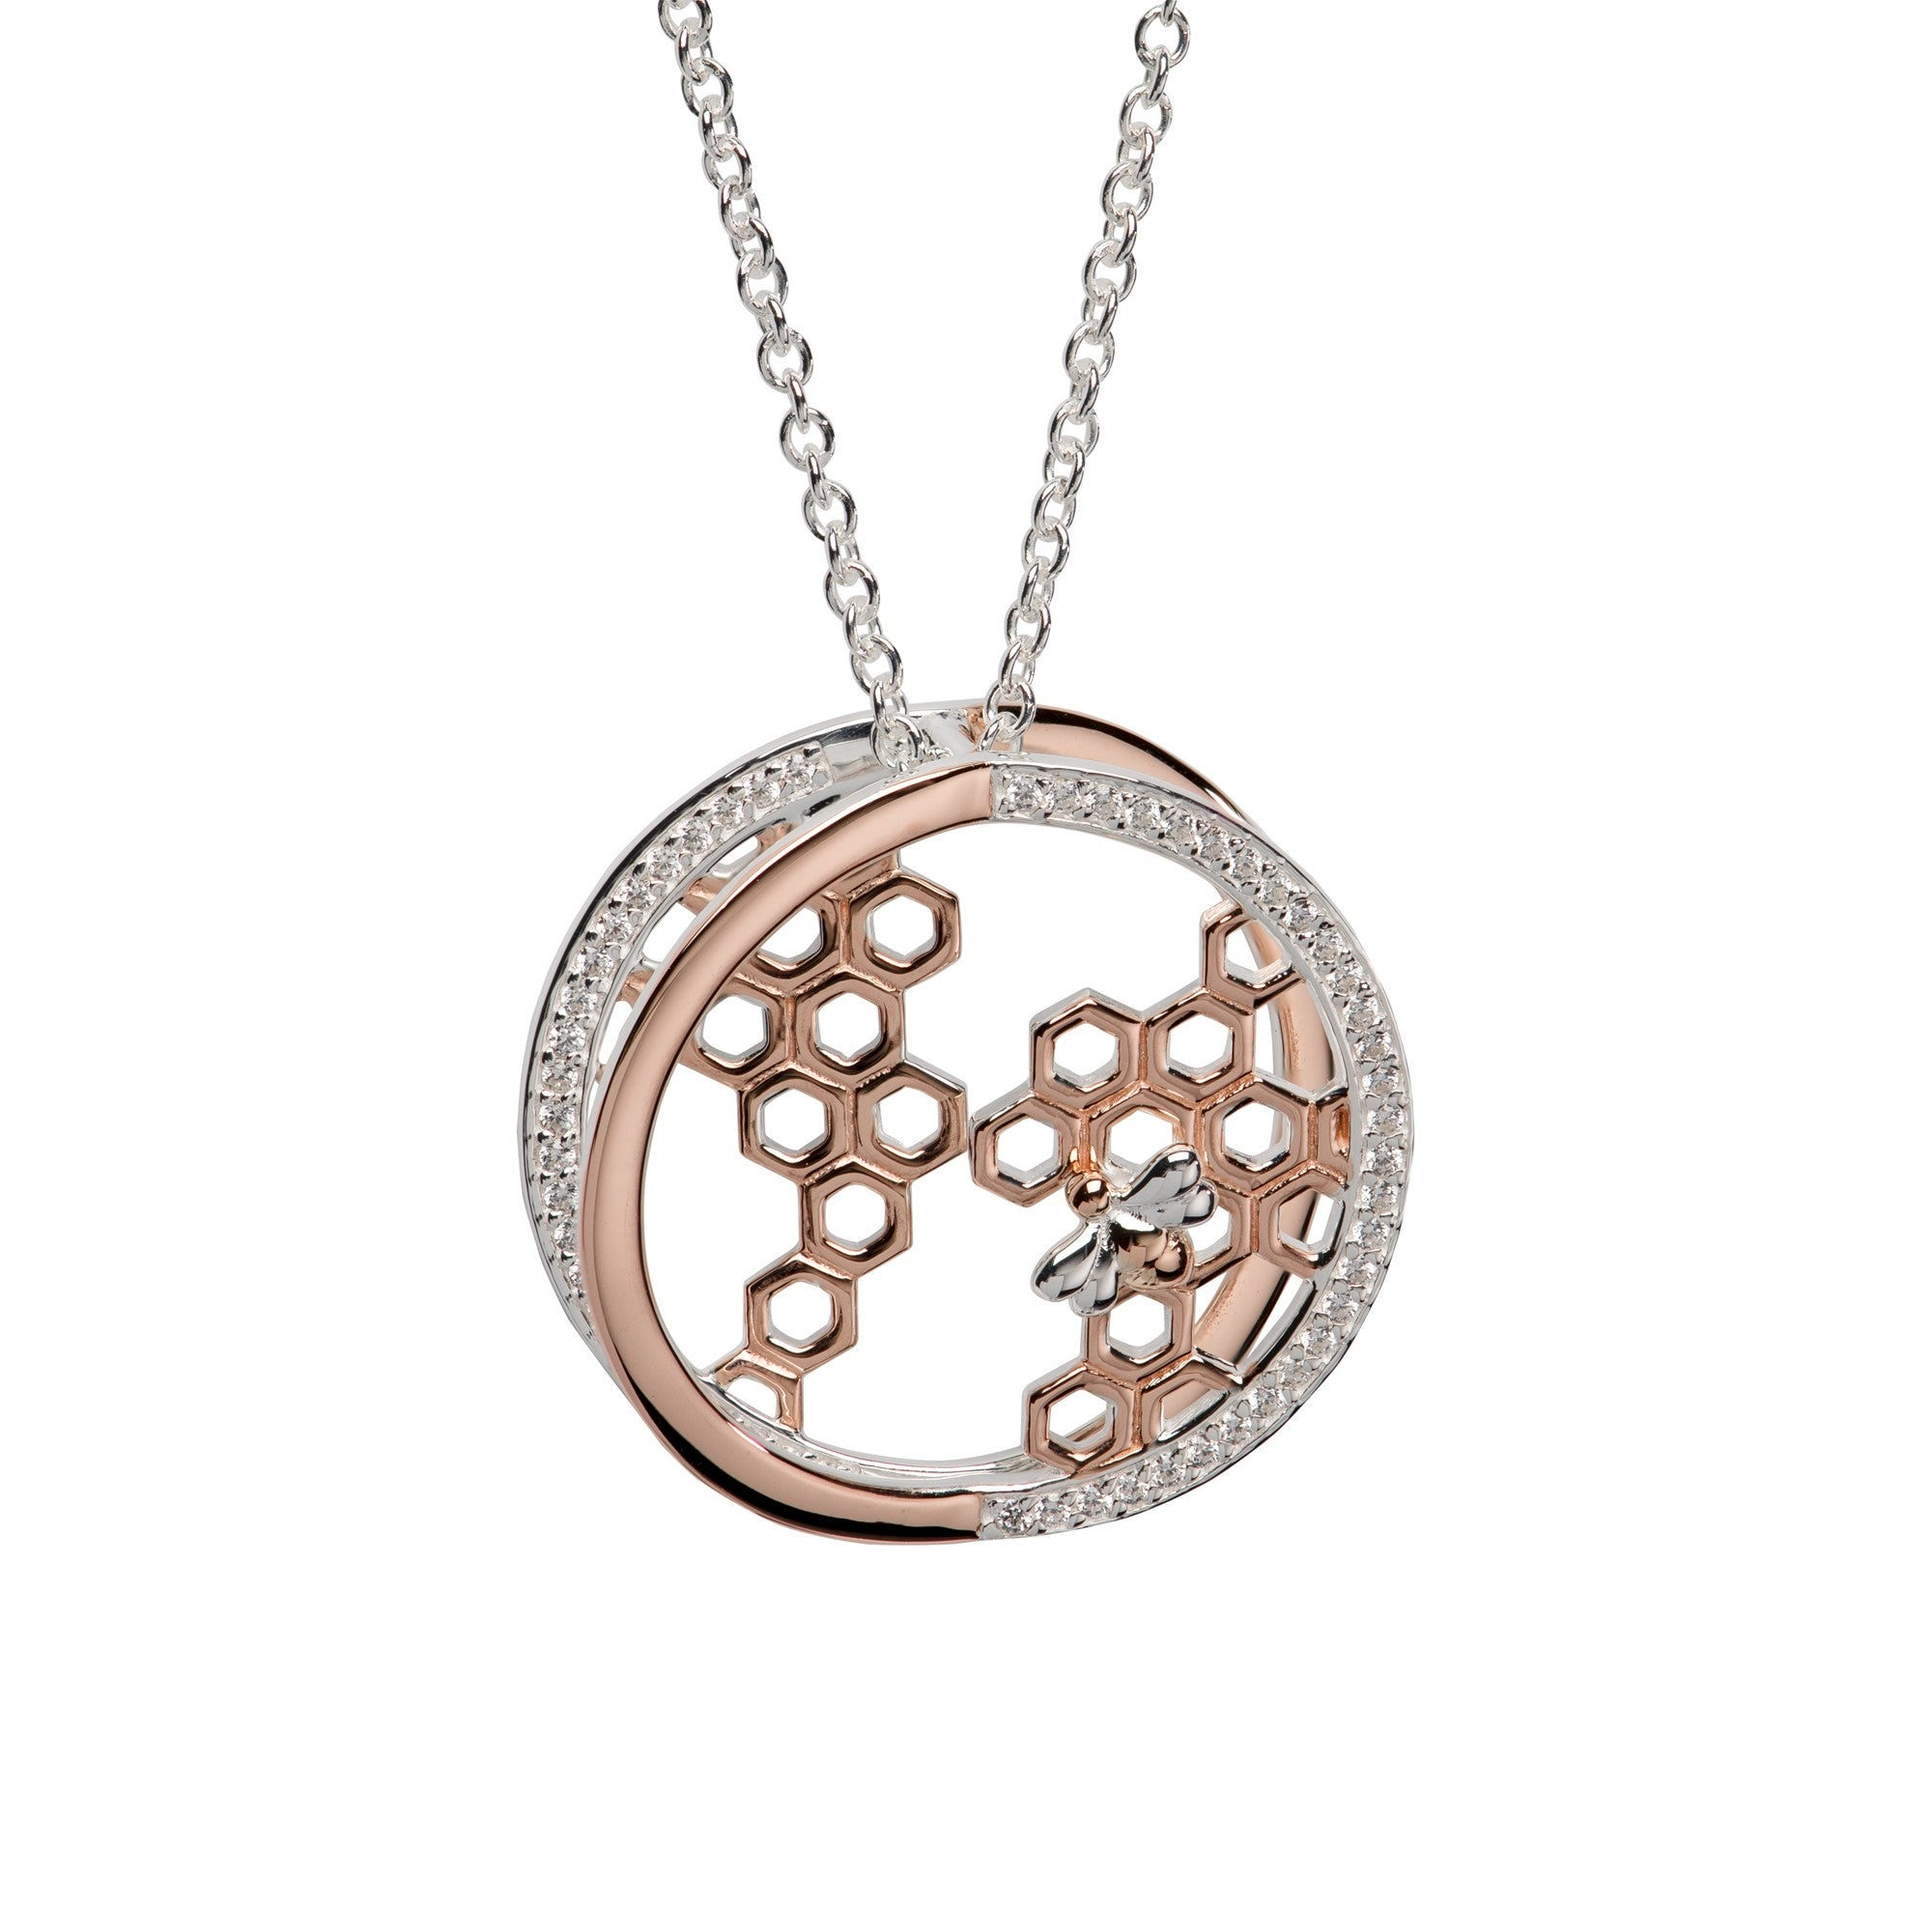 Unique & Co Sterling Silver & Rose Gold Bee & Honeycomb Pendant